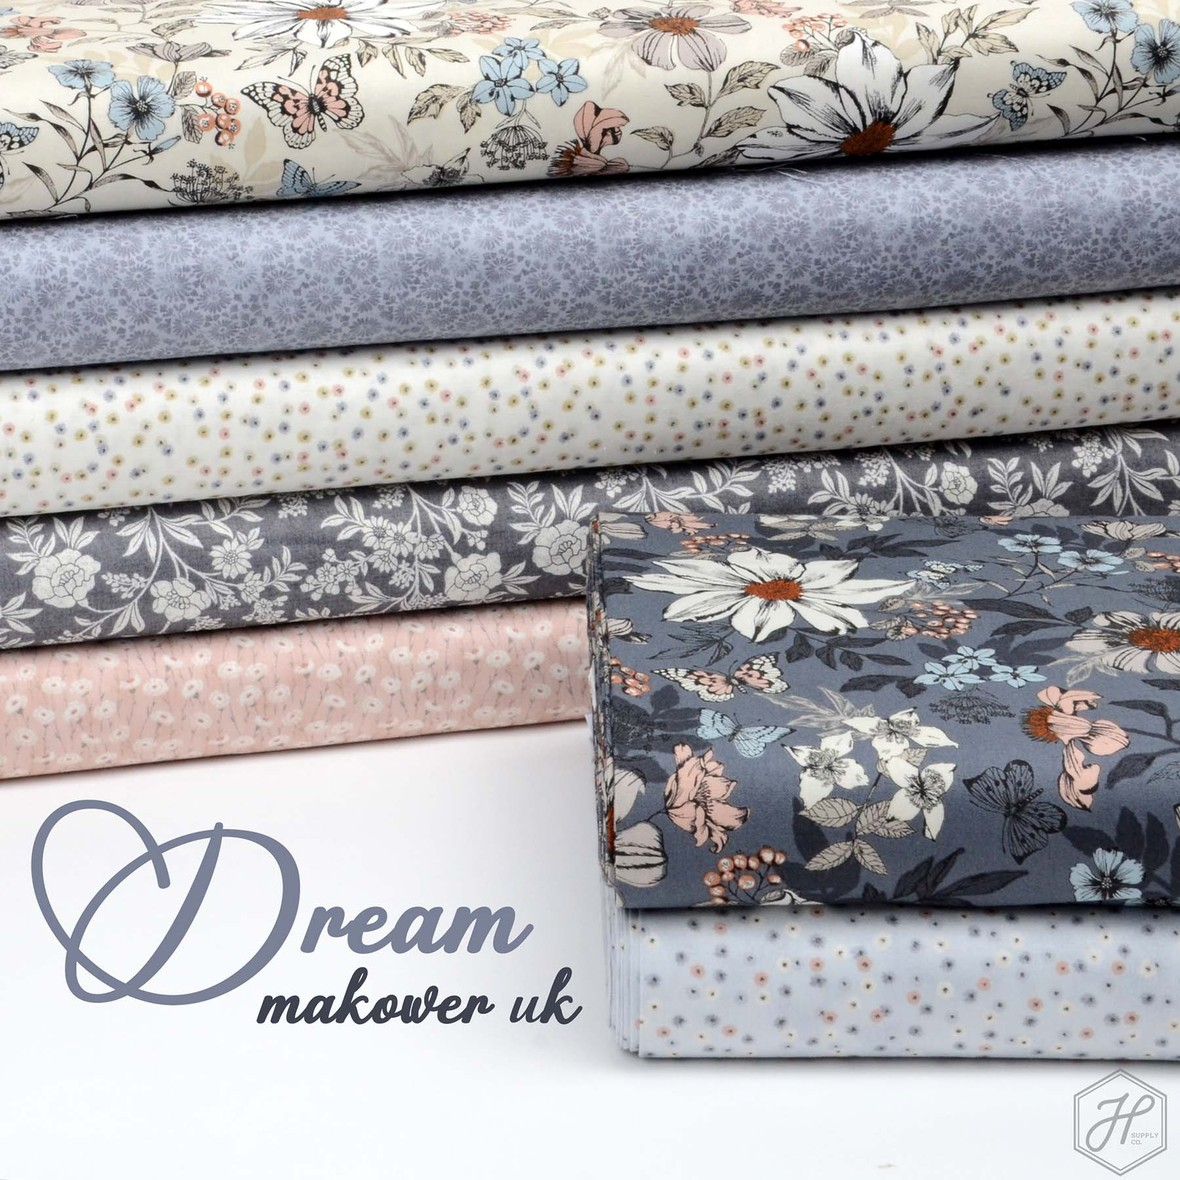 Dream Fabric Poster Makower Uk at Hawthorne Supply Co